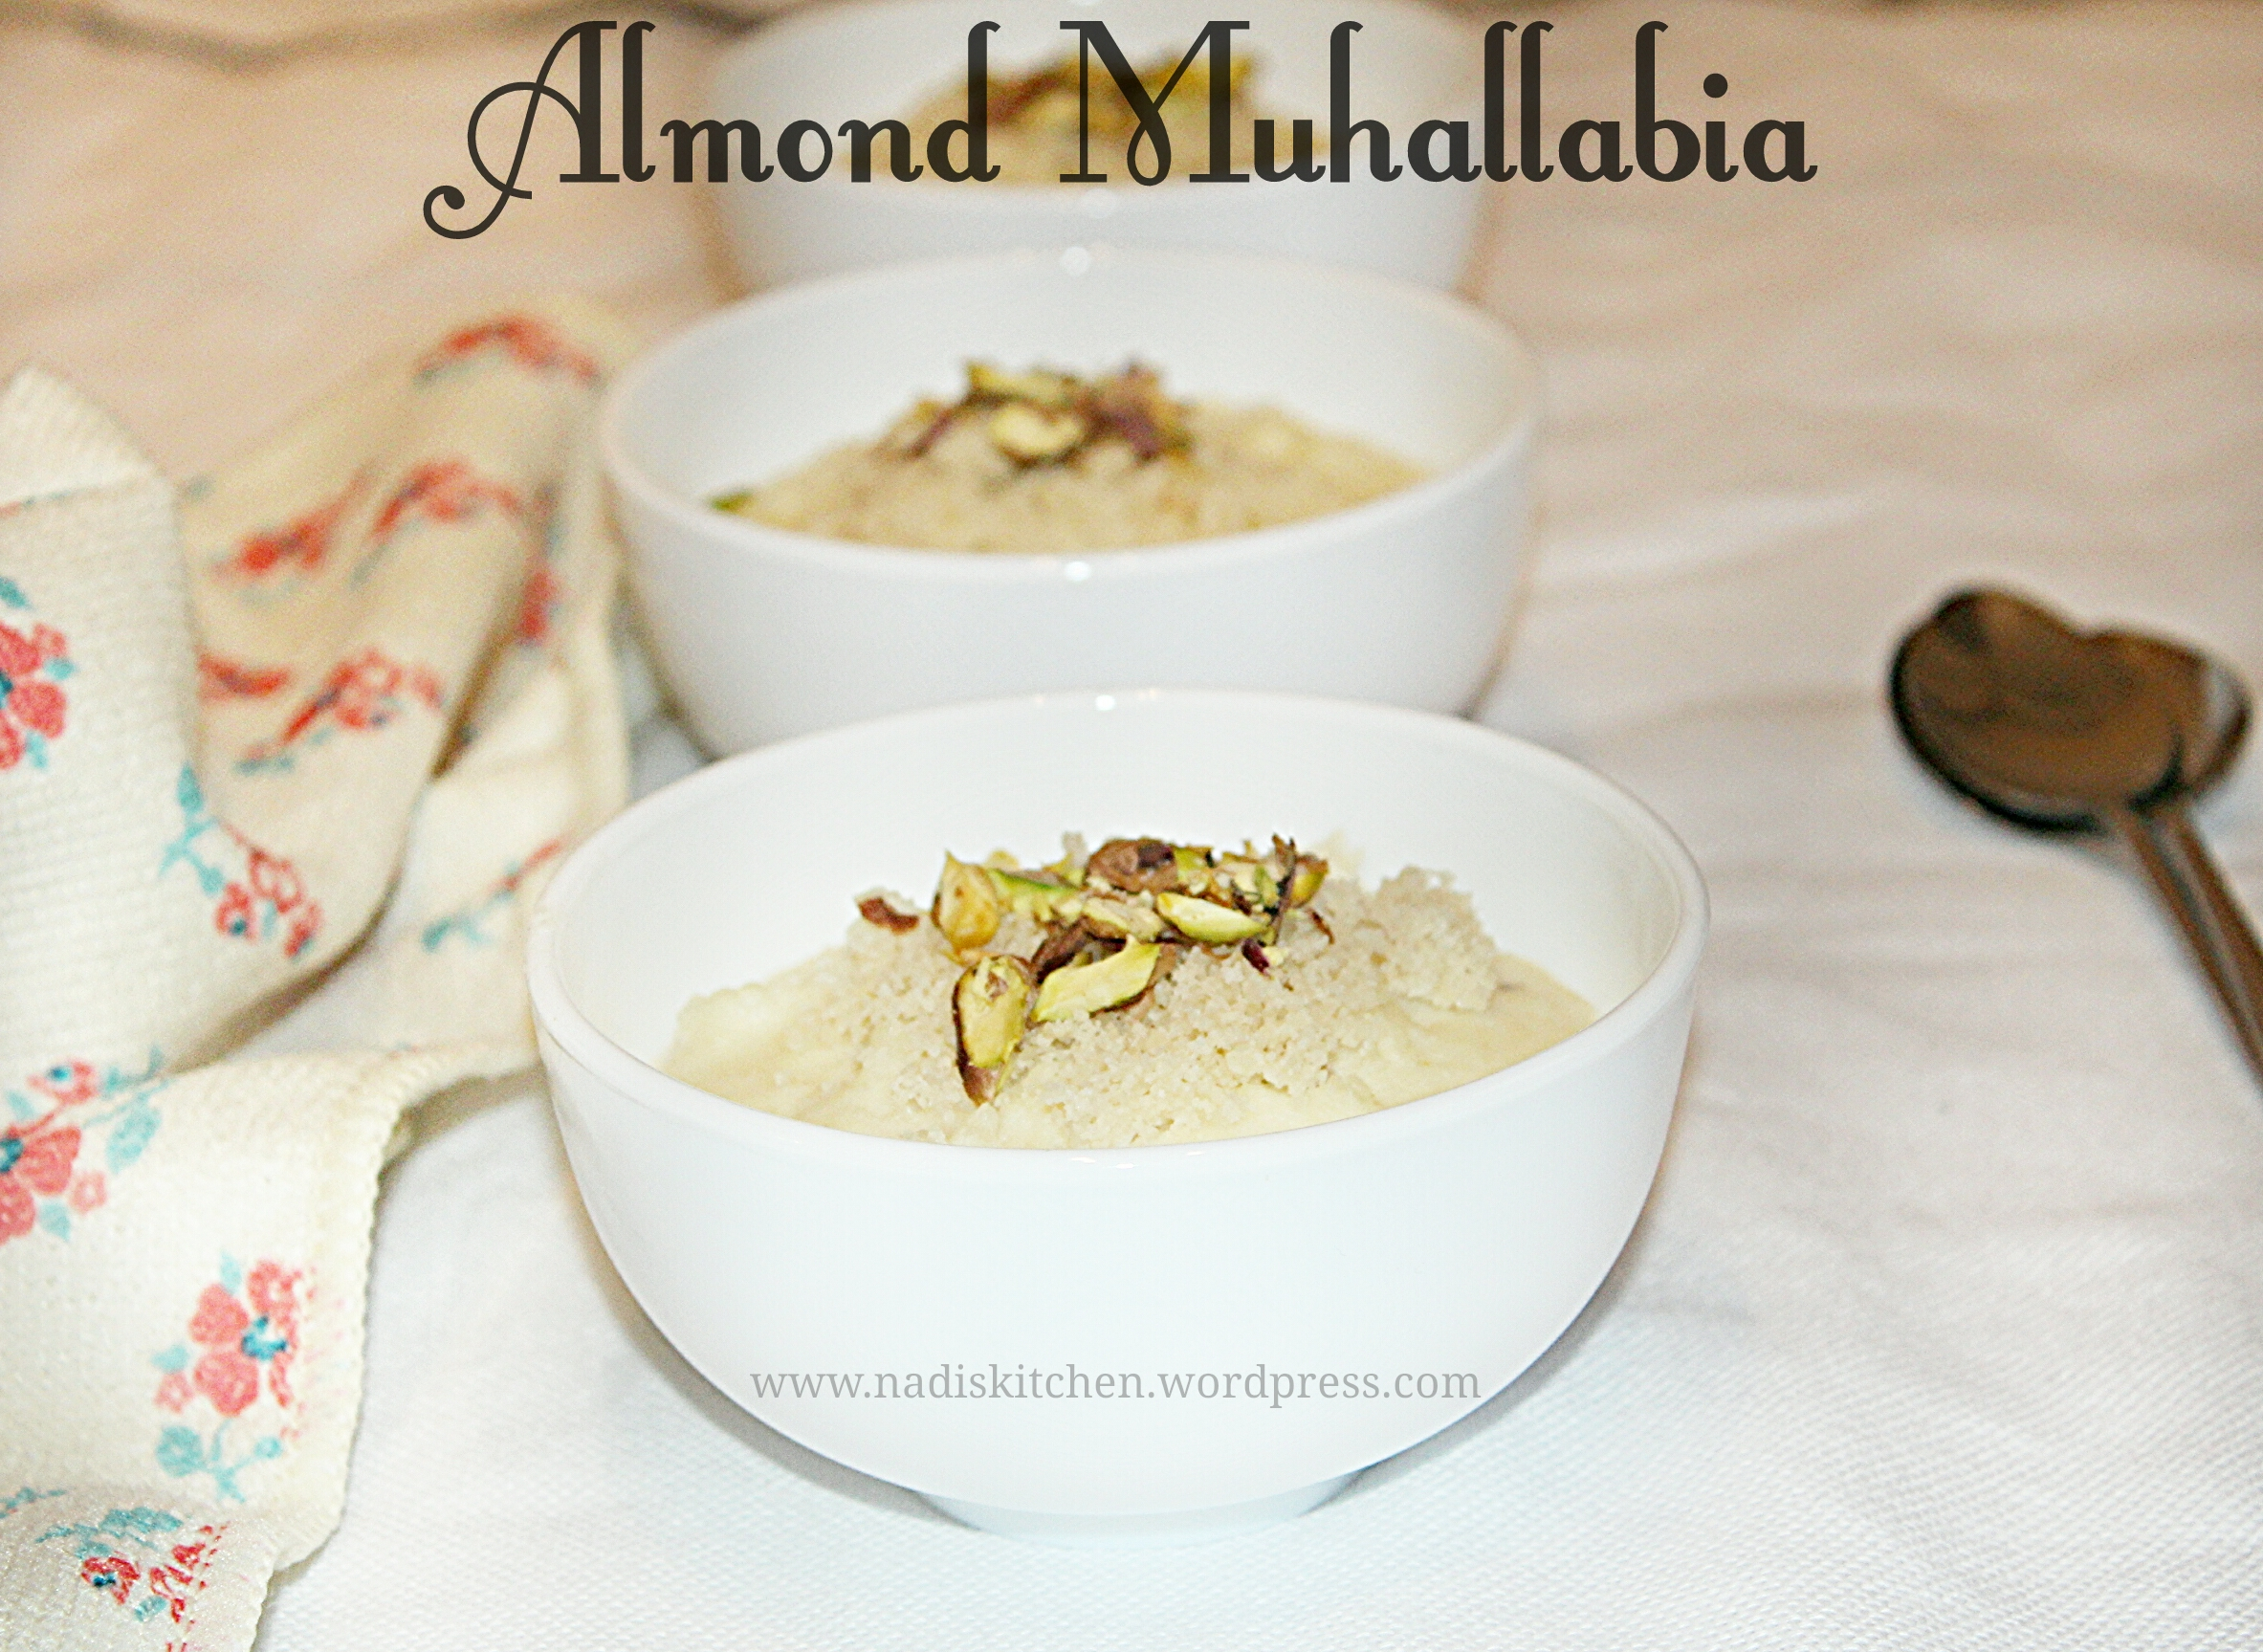 Almond Muhallabia (Middle Eastern Dessert)